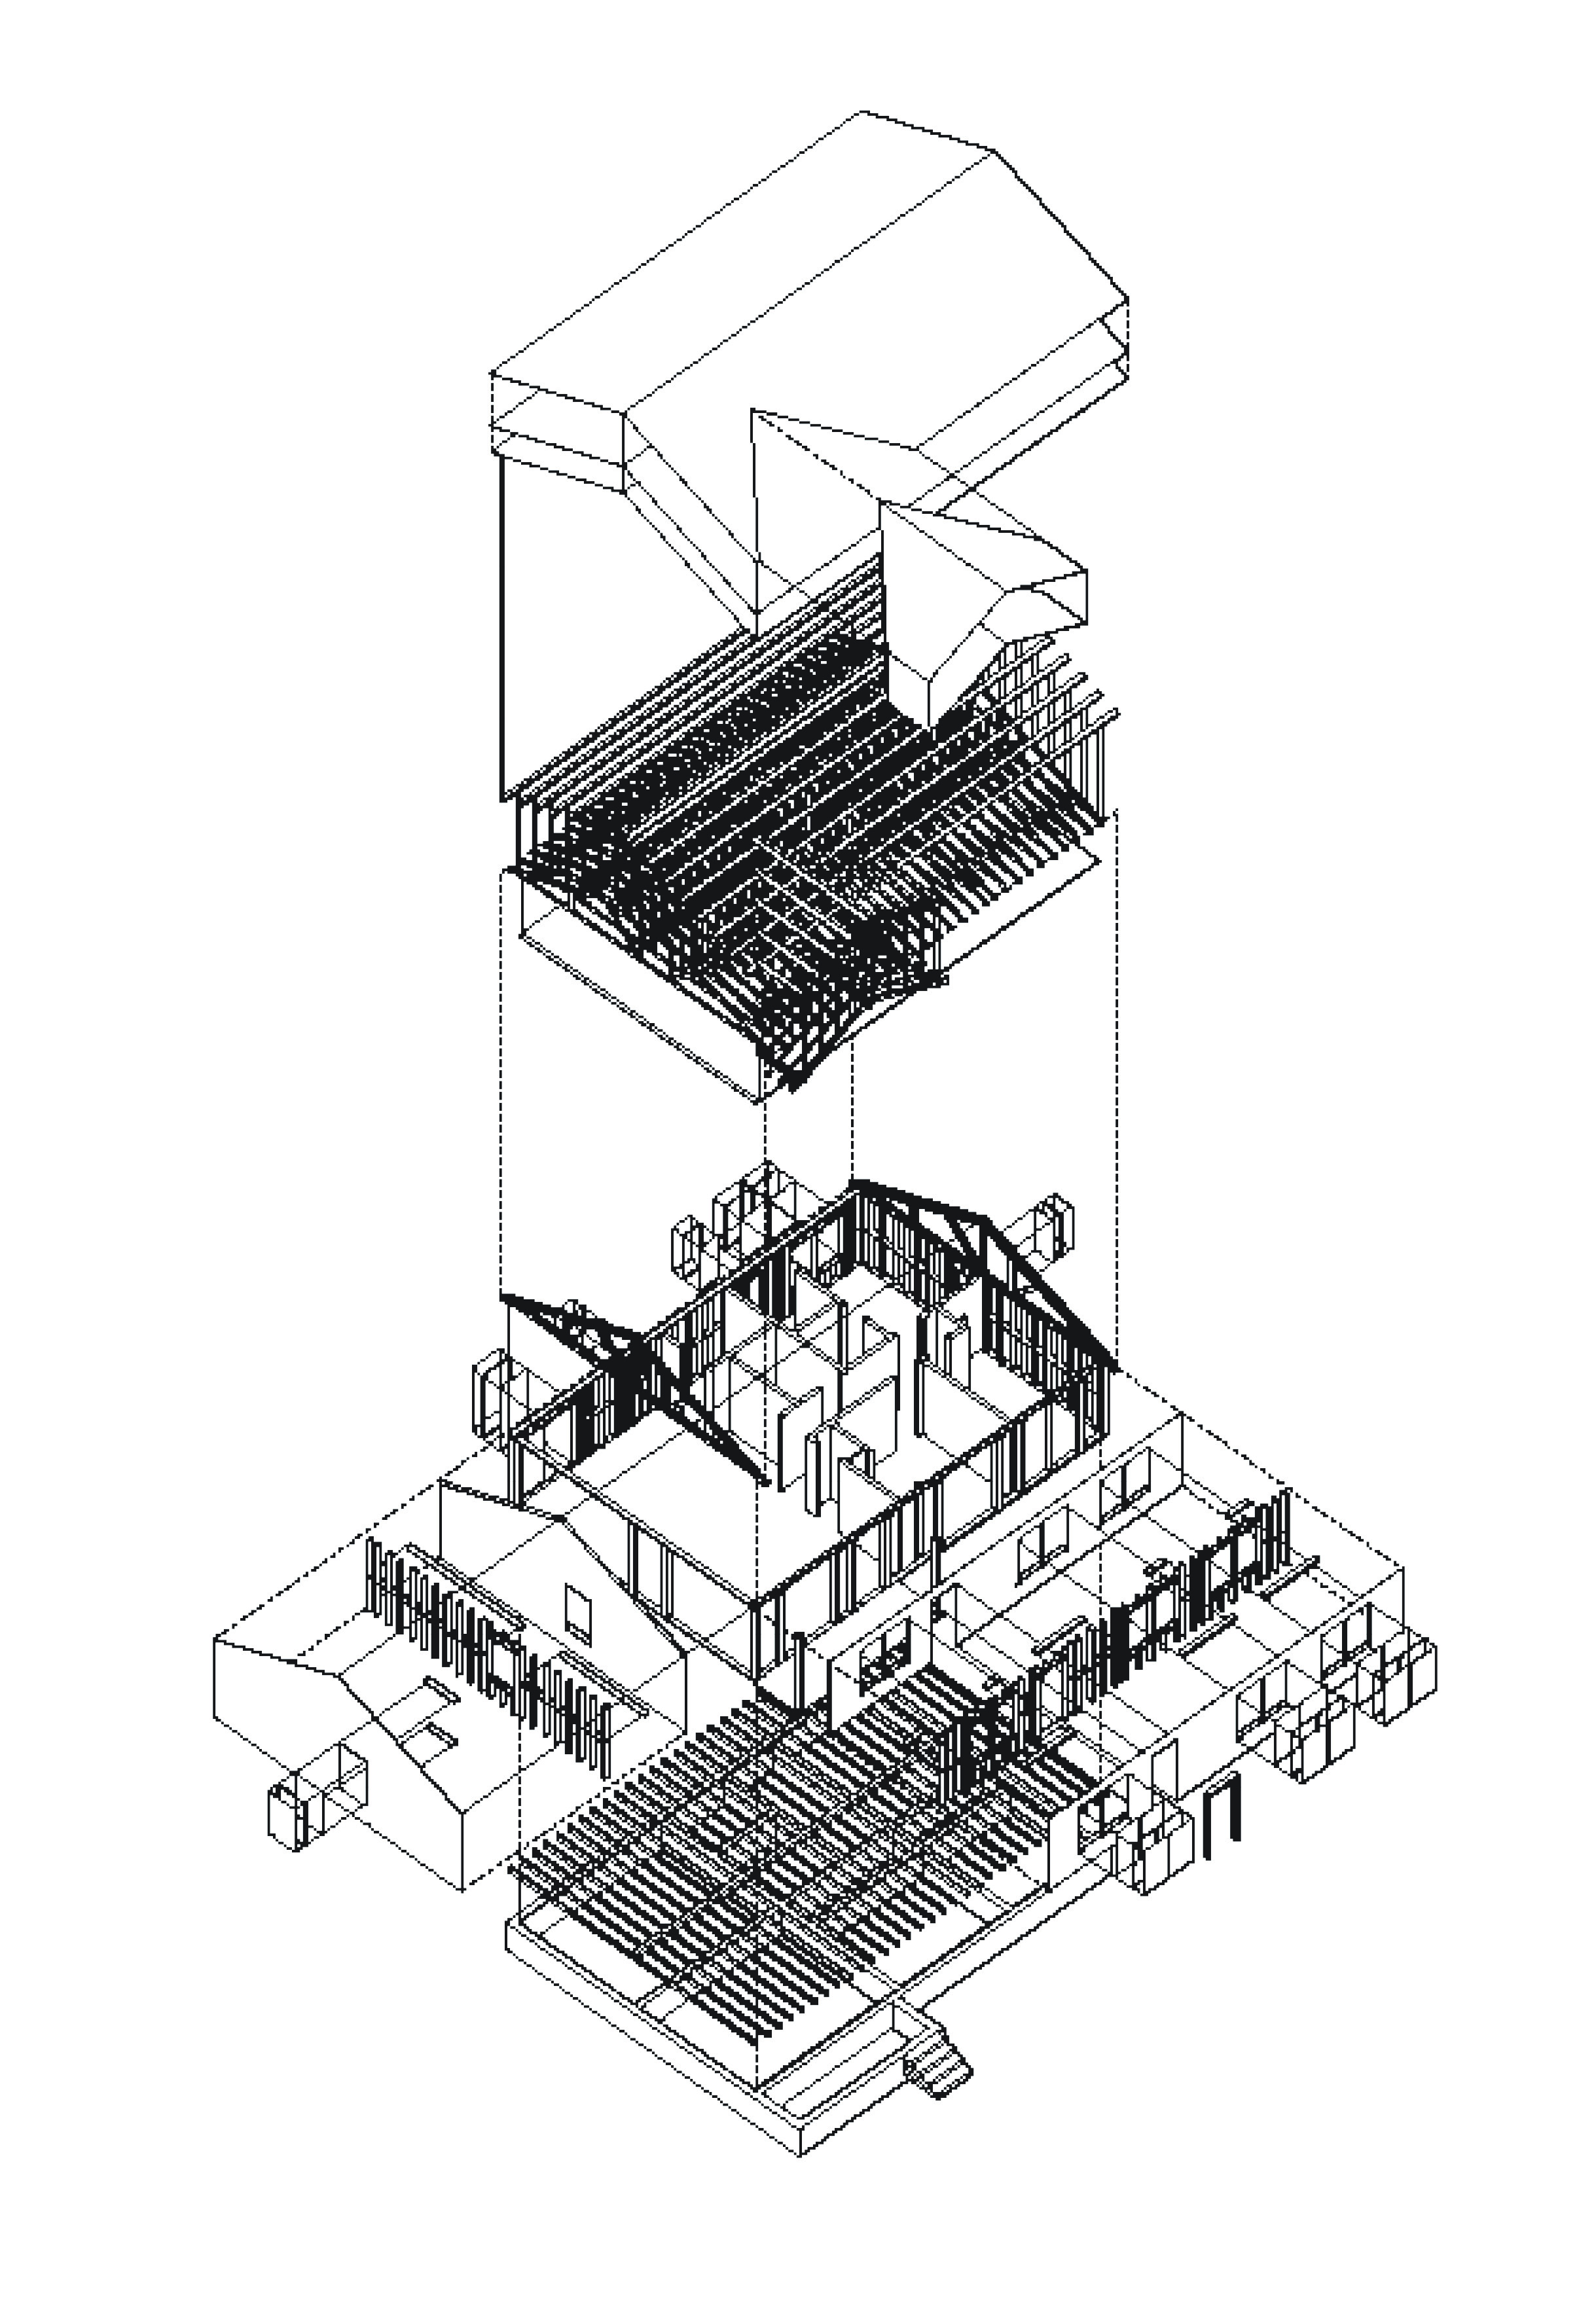 Picture of Exploded Axonometric